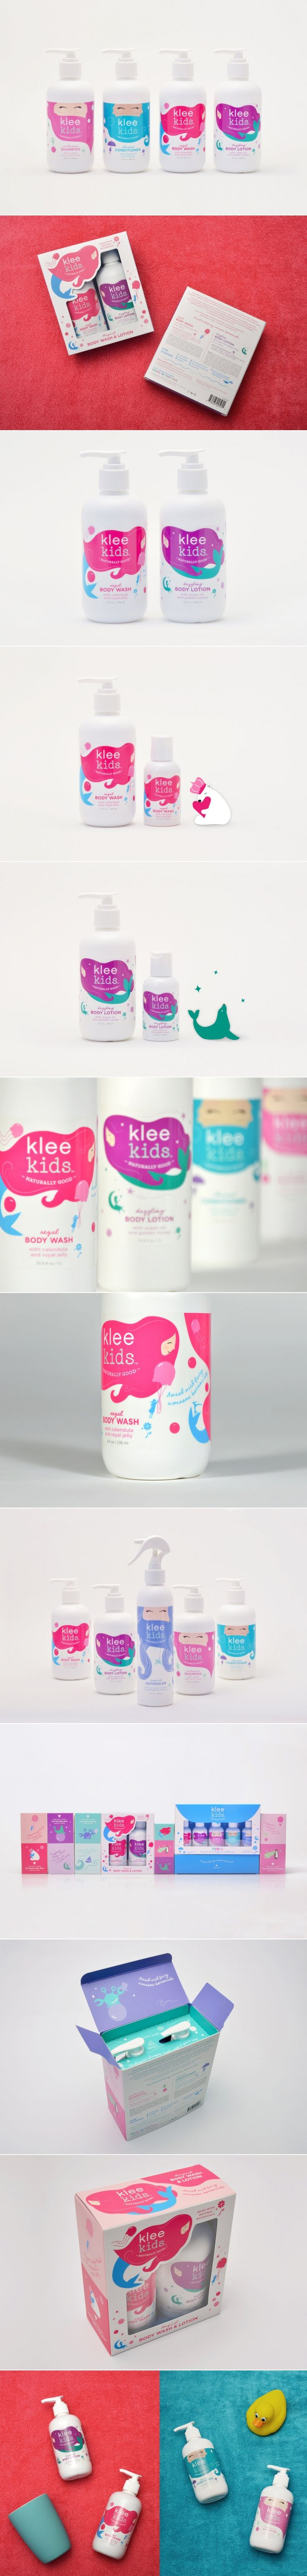 Klee Kids Is Bringing Wholesome Ingredients to Bath Time — The Dieline | Packaging & Branding Design & Innovation News